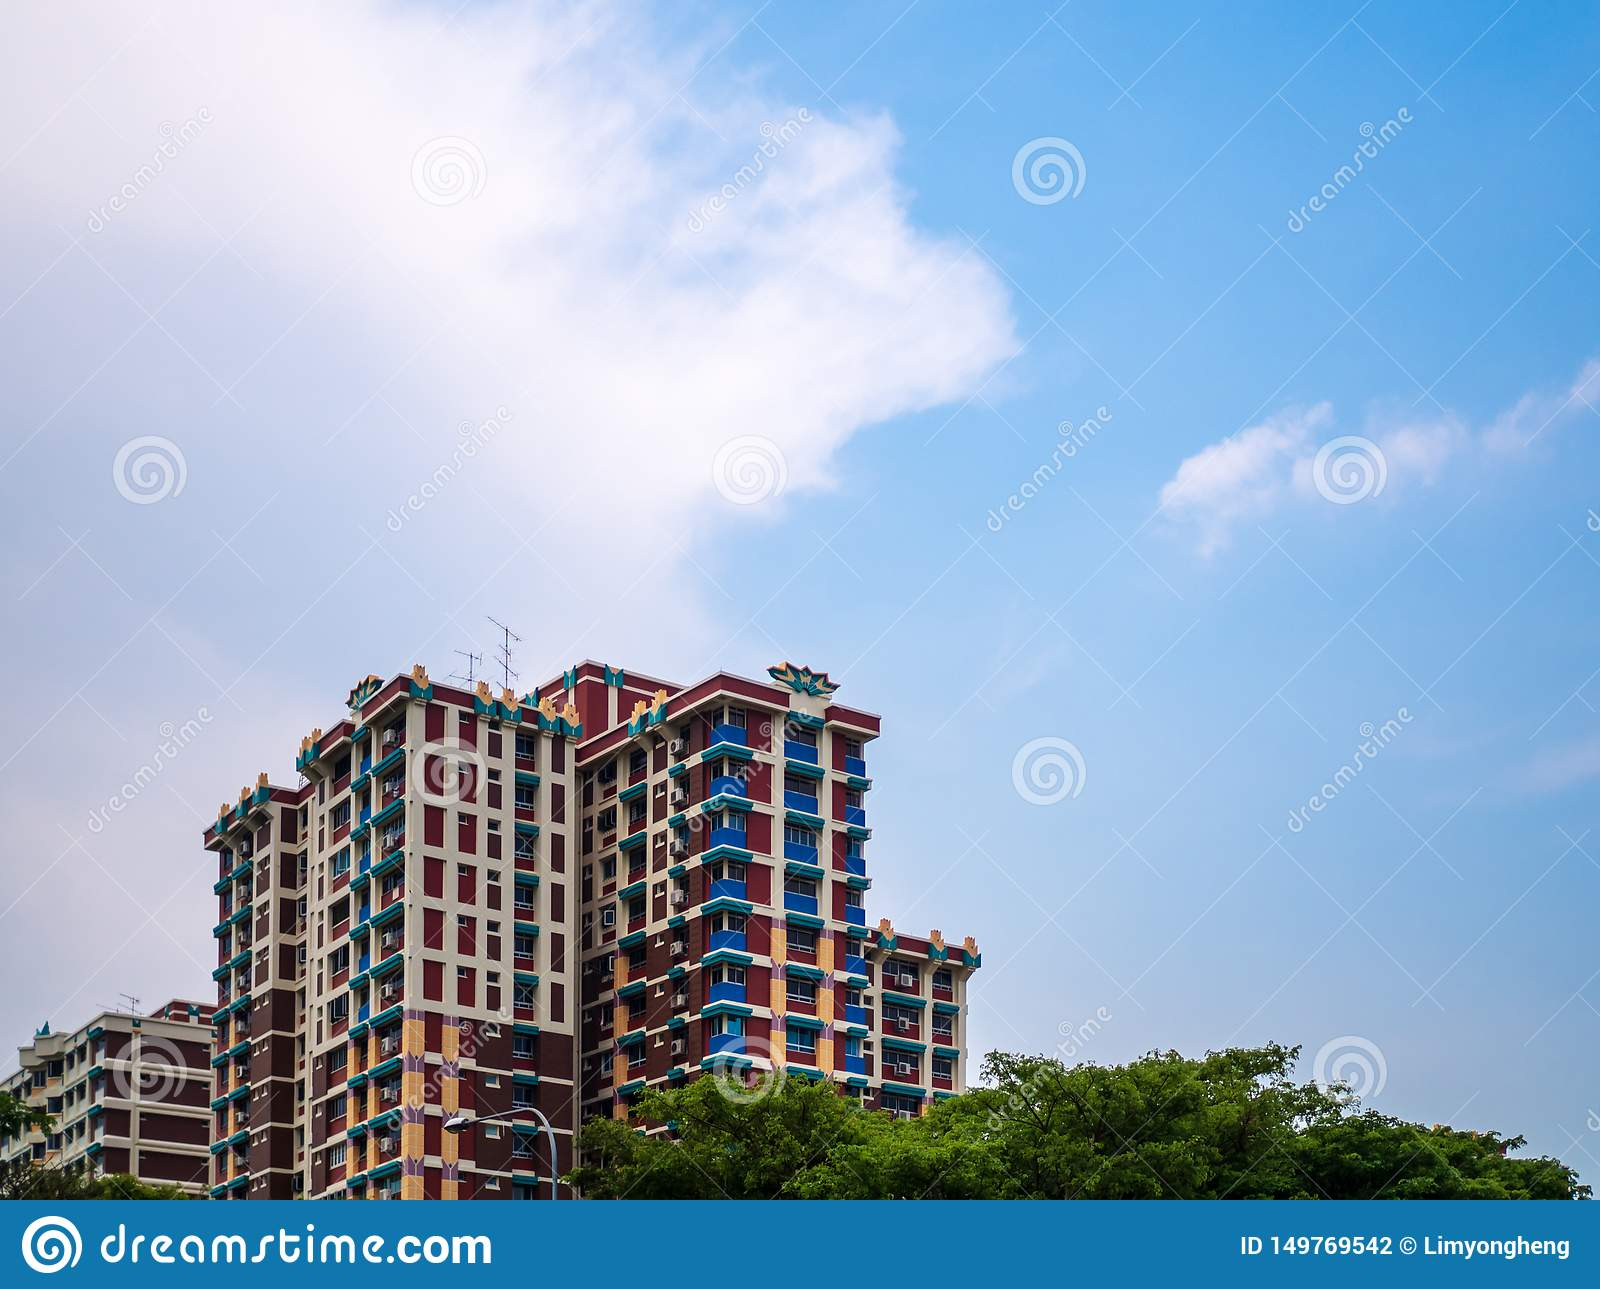 Scenic view of government built public housing in Singapore HBD flats against the blue sky